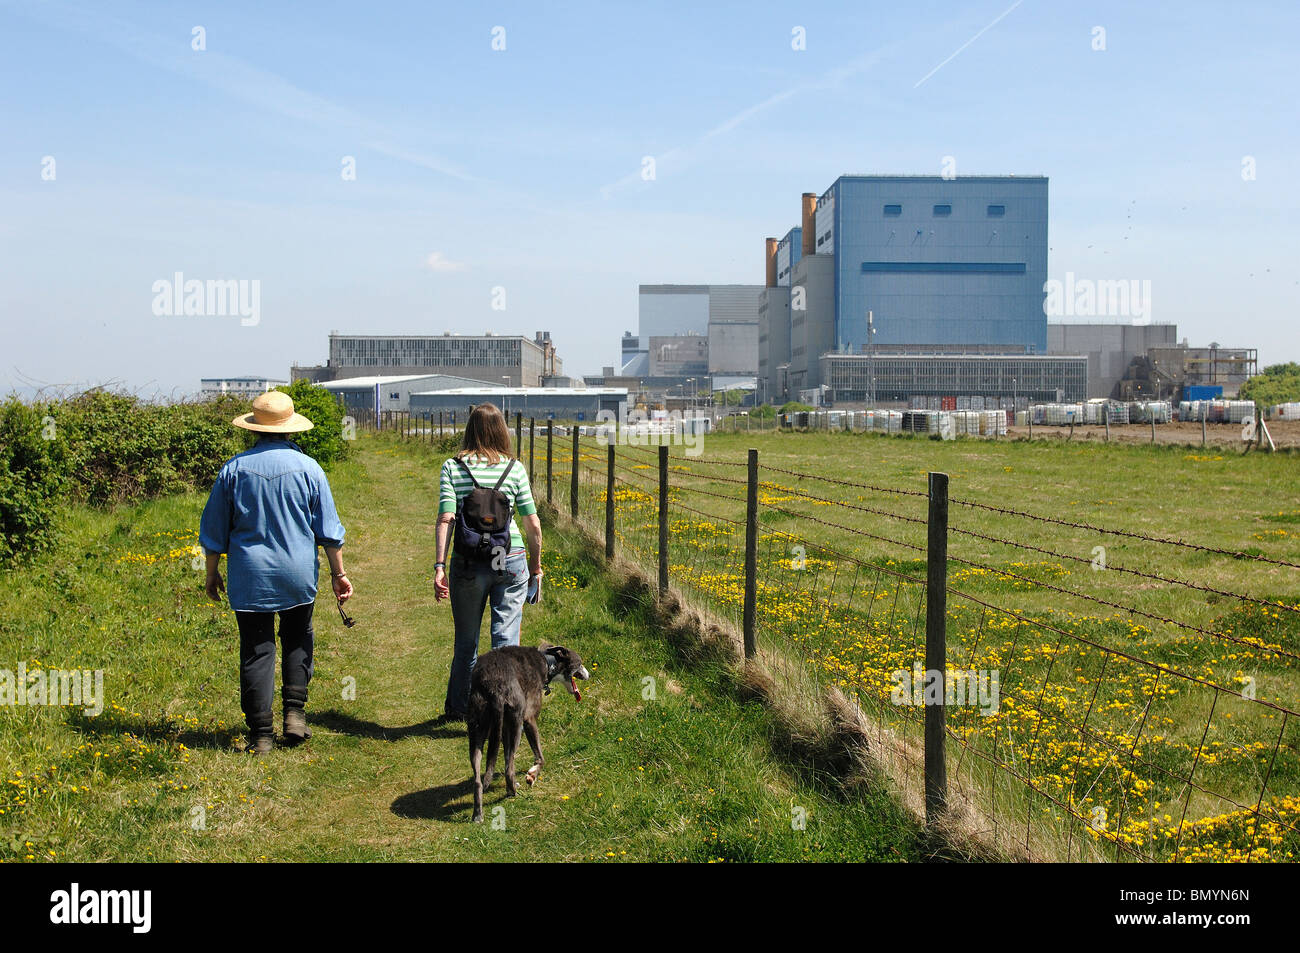 Site of Proposed Hinkley C Nuclear Power station with Existing Nuclear Stations behind - Stock Image